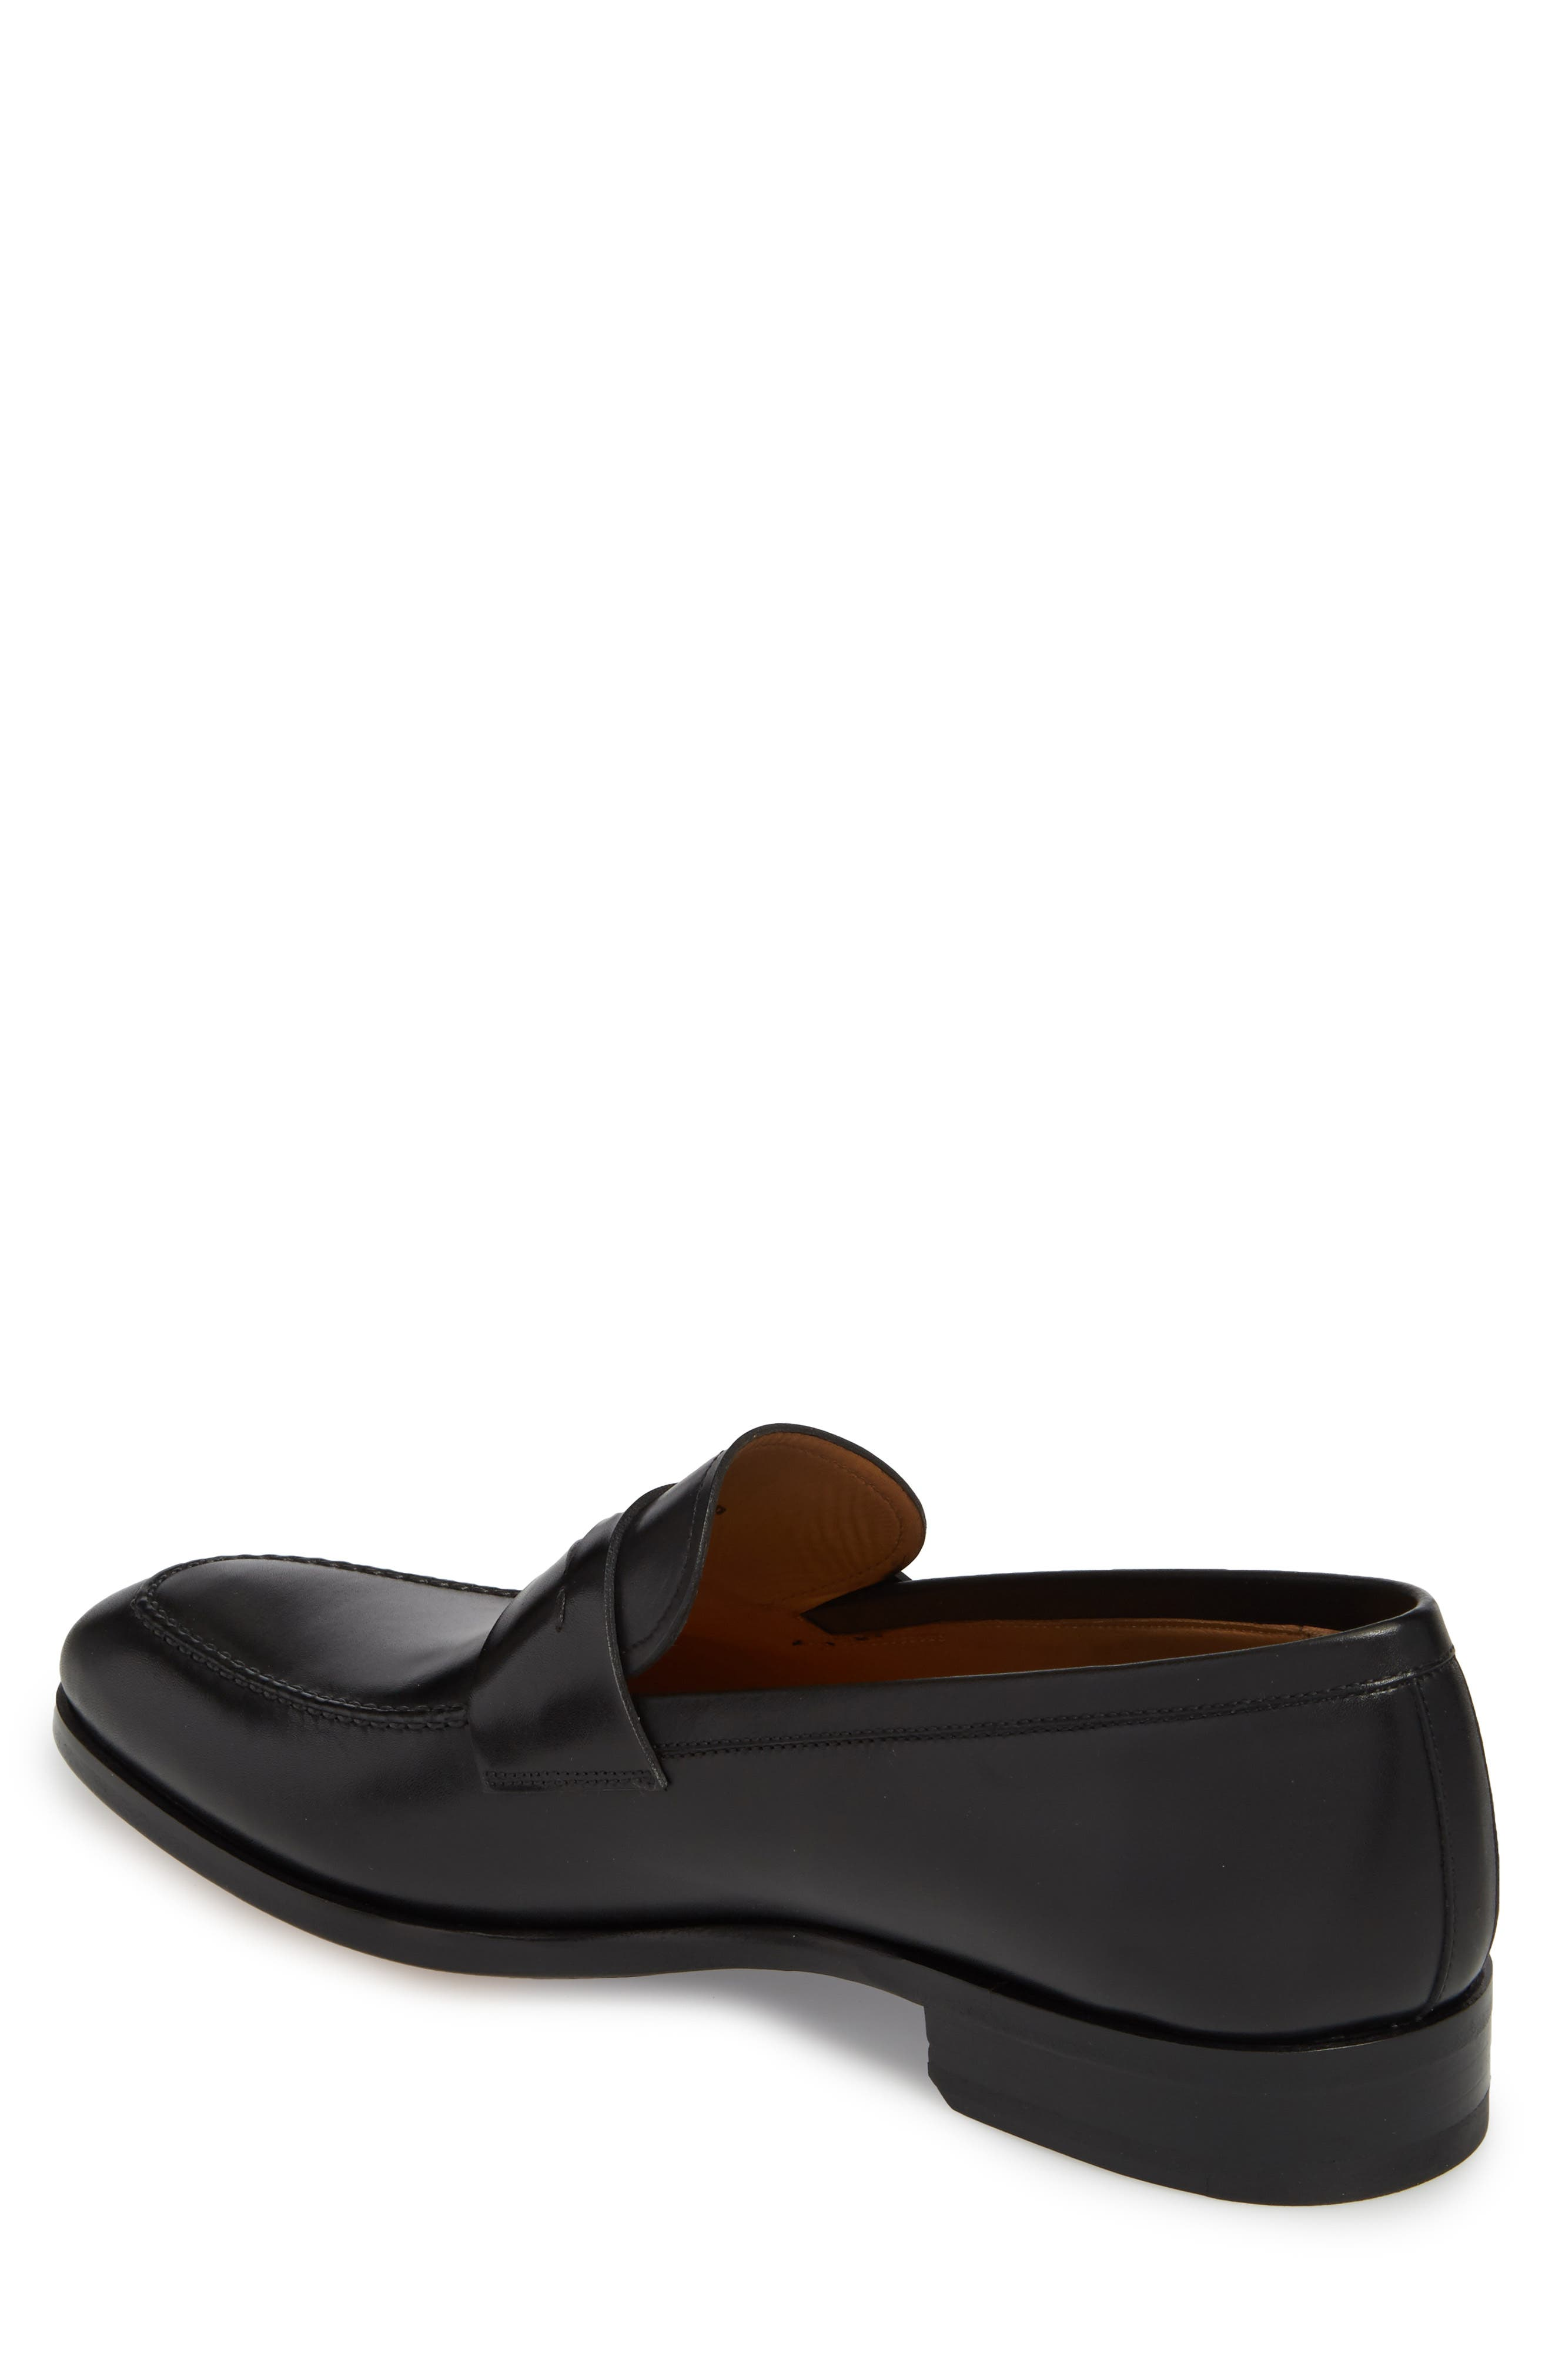 Rolly Apron Toe Penny Loafer,                             Alternate thumbnail 2, color,                             BLACK LEATHER